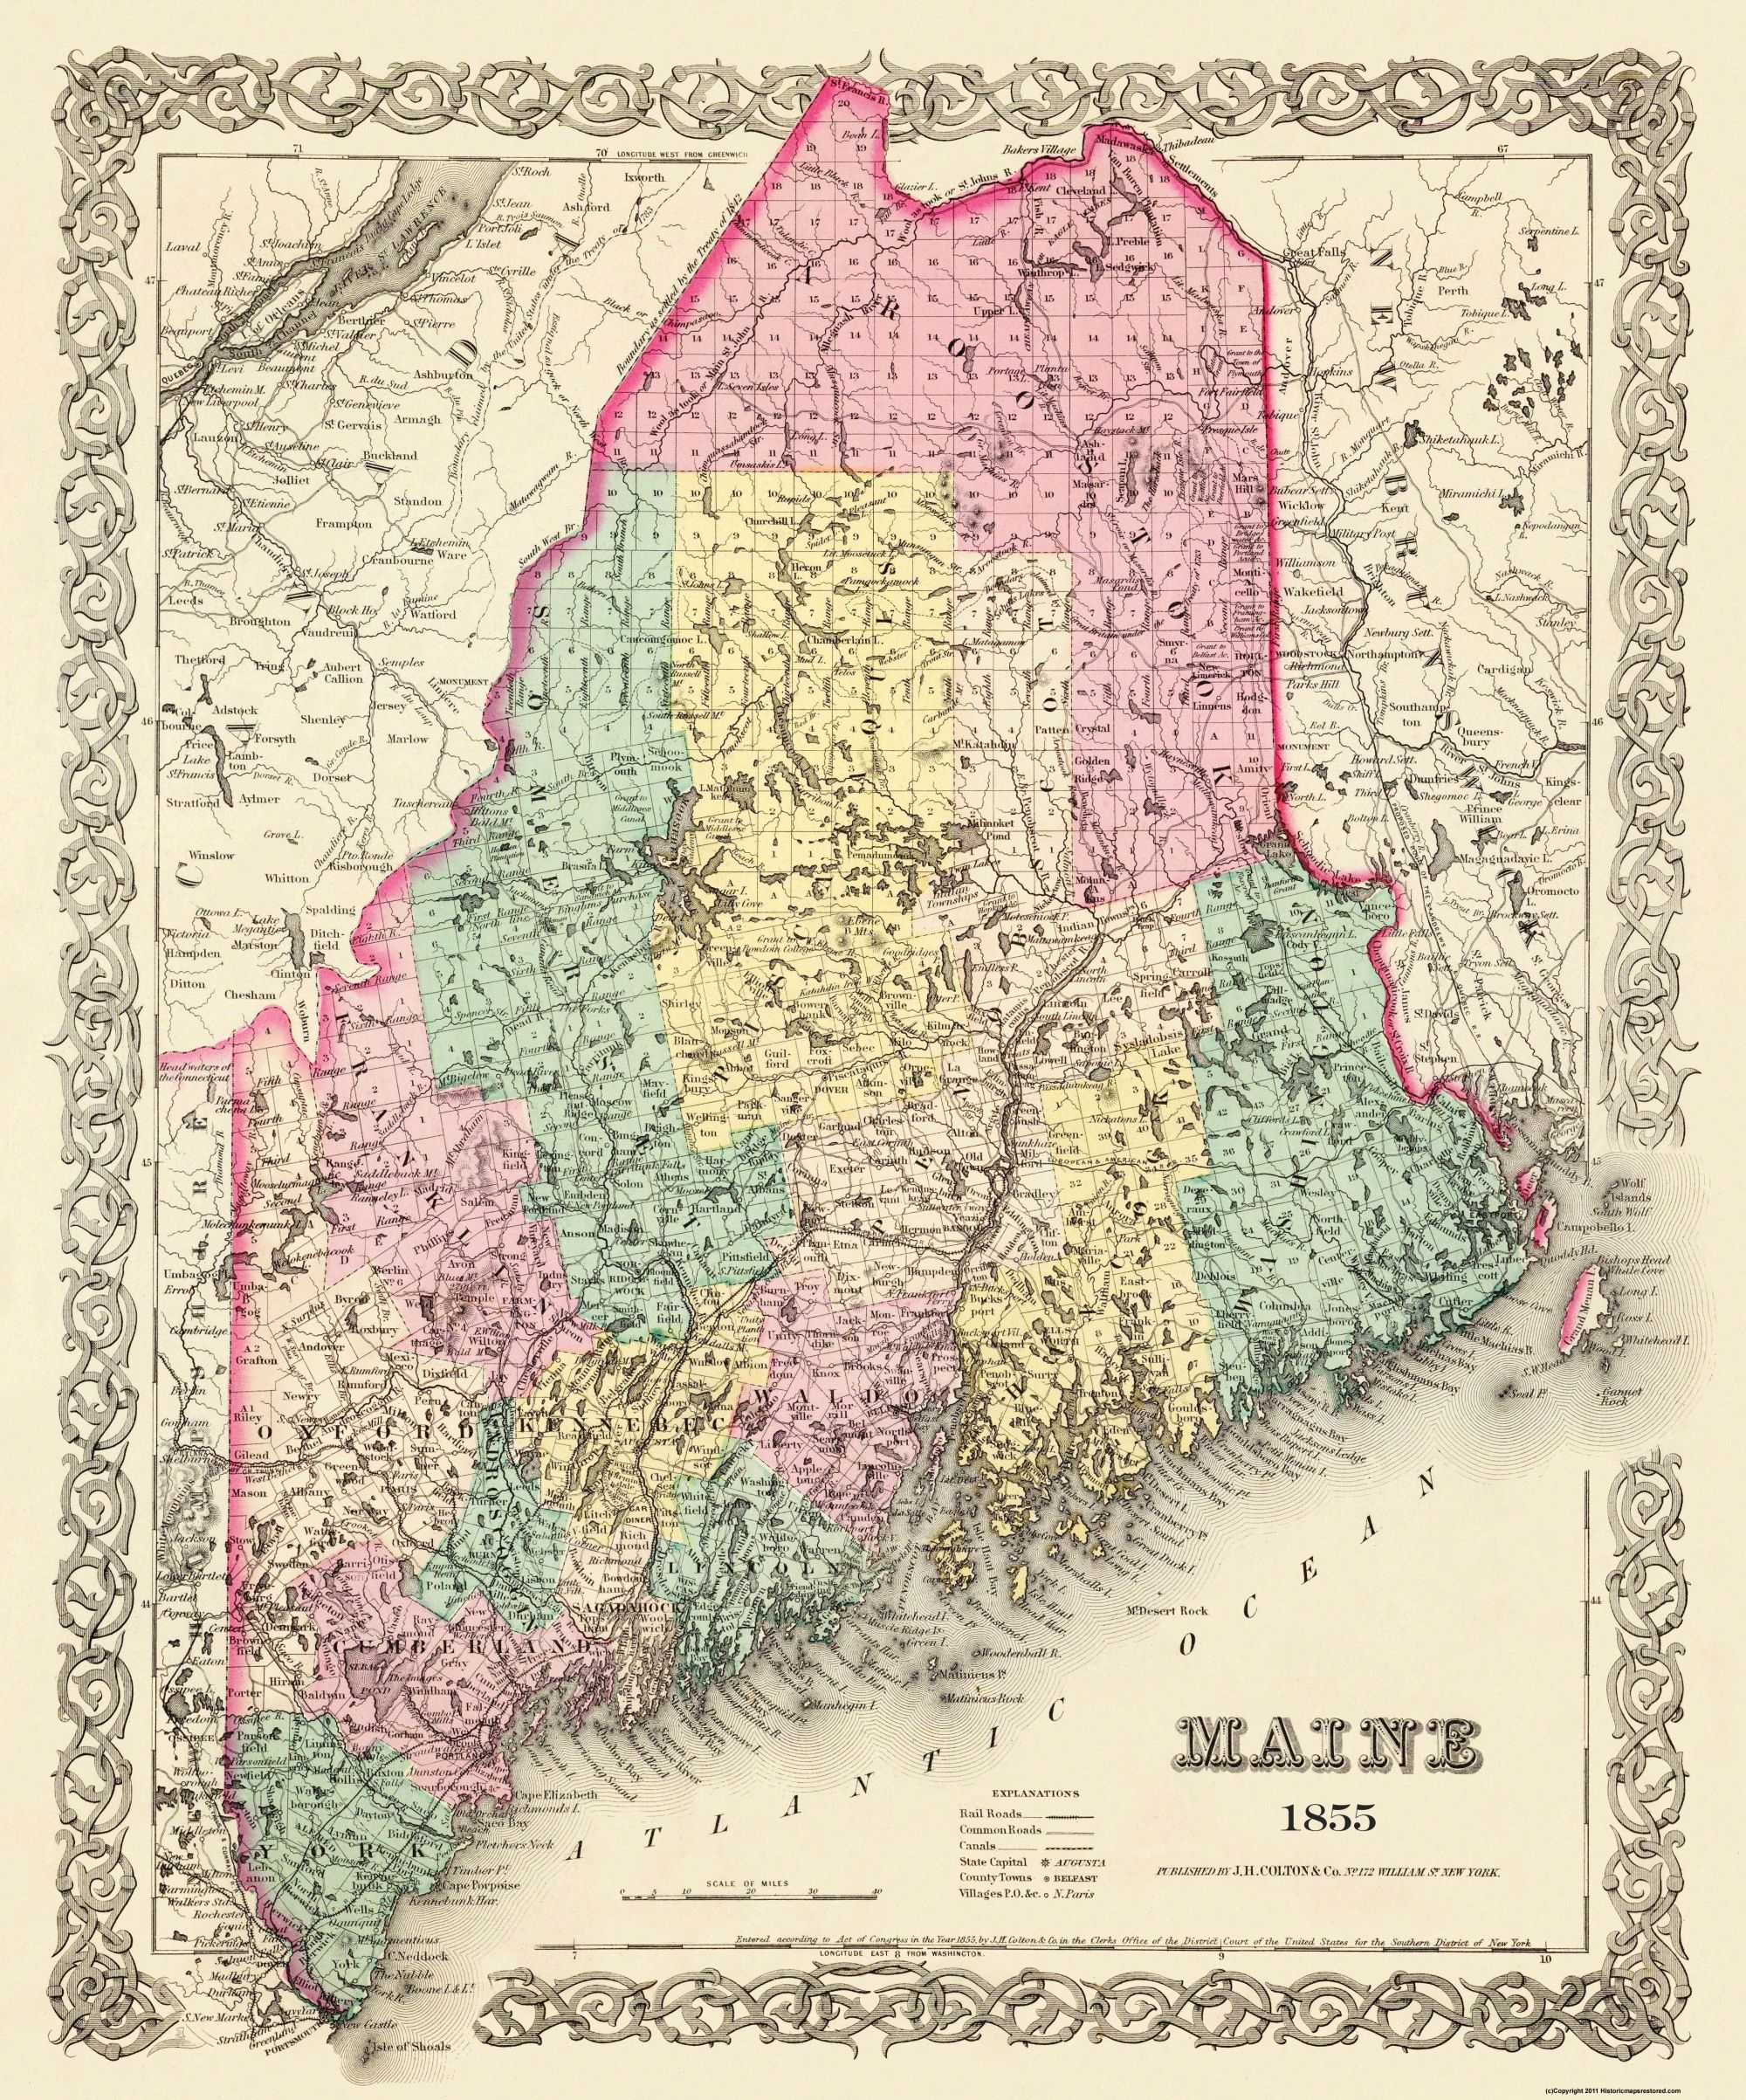 Old Maine Map.Old State Map Maine Colton 1855 23 X 27 63 Walmart Com